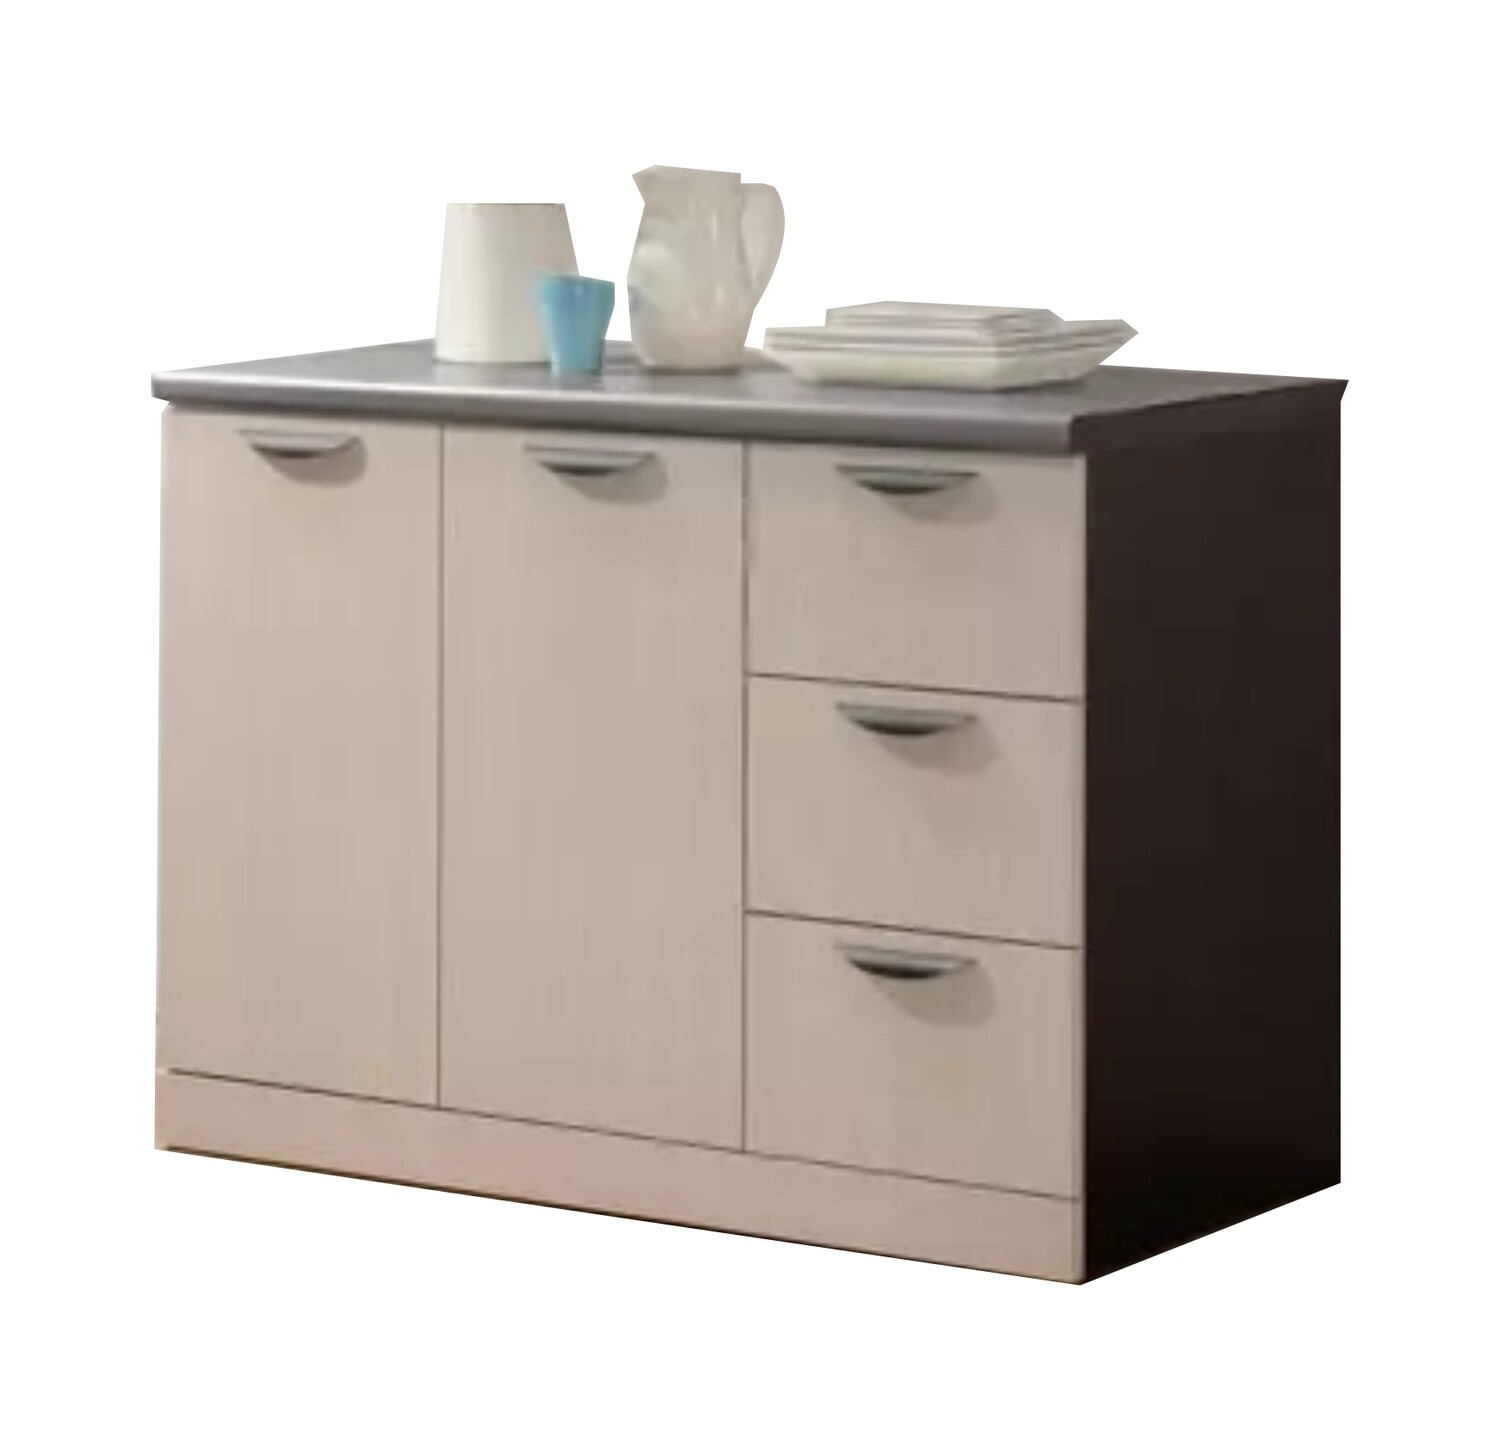 2 Doors and 3 Drawers Low Kitchen Cabinet